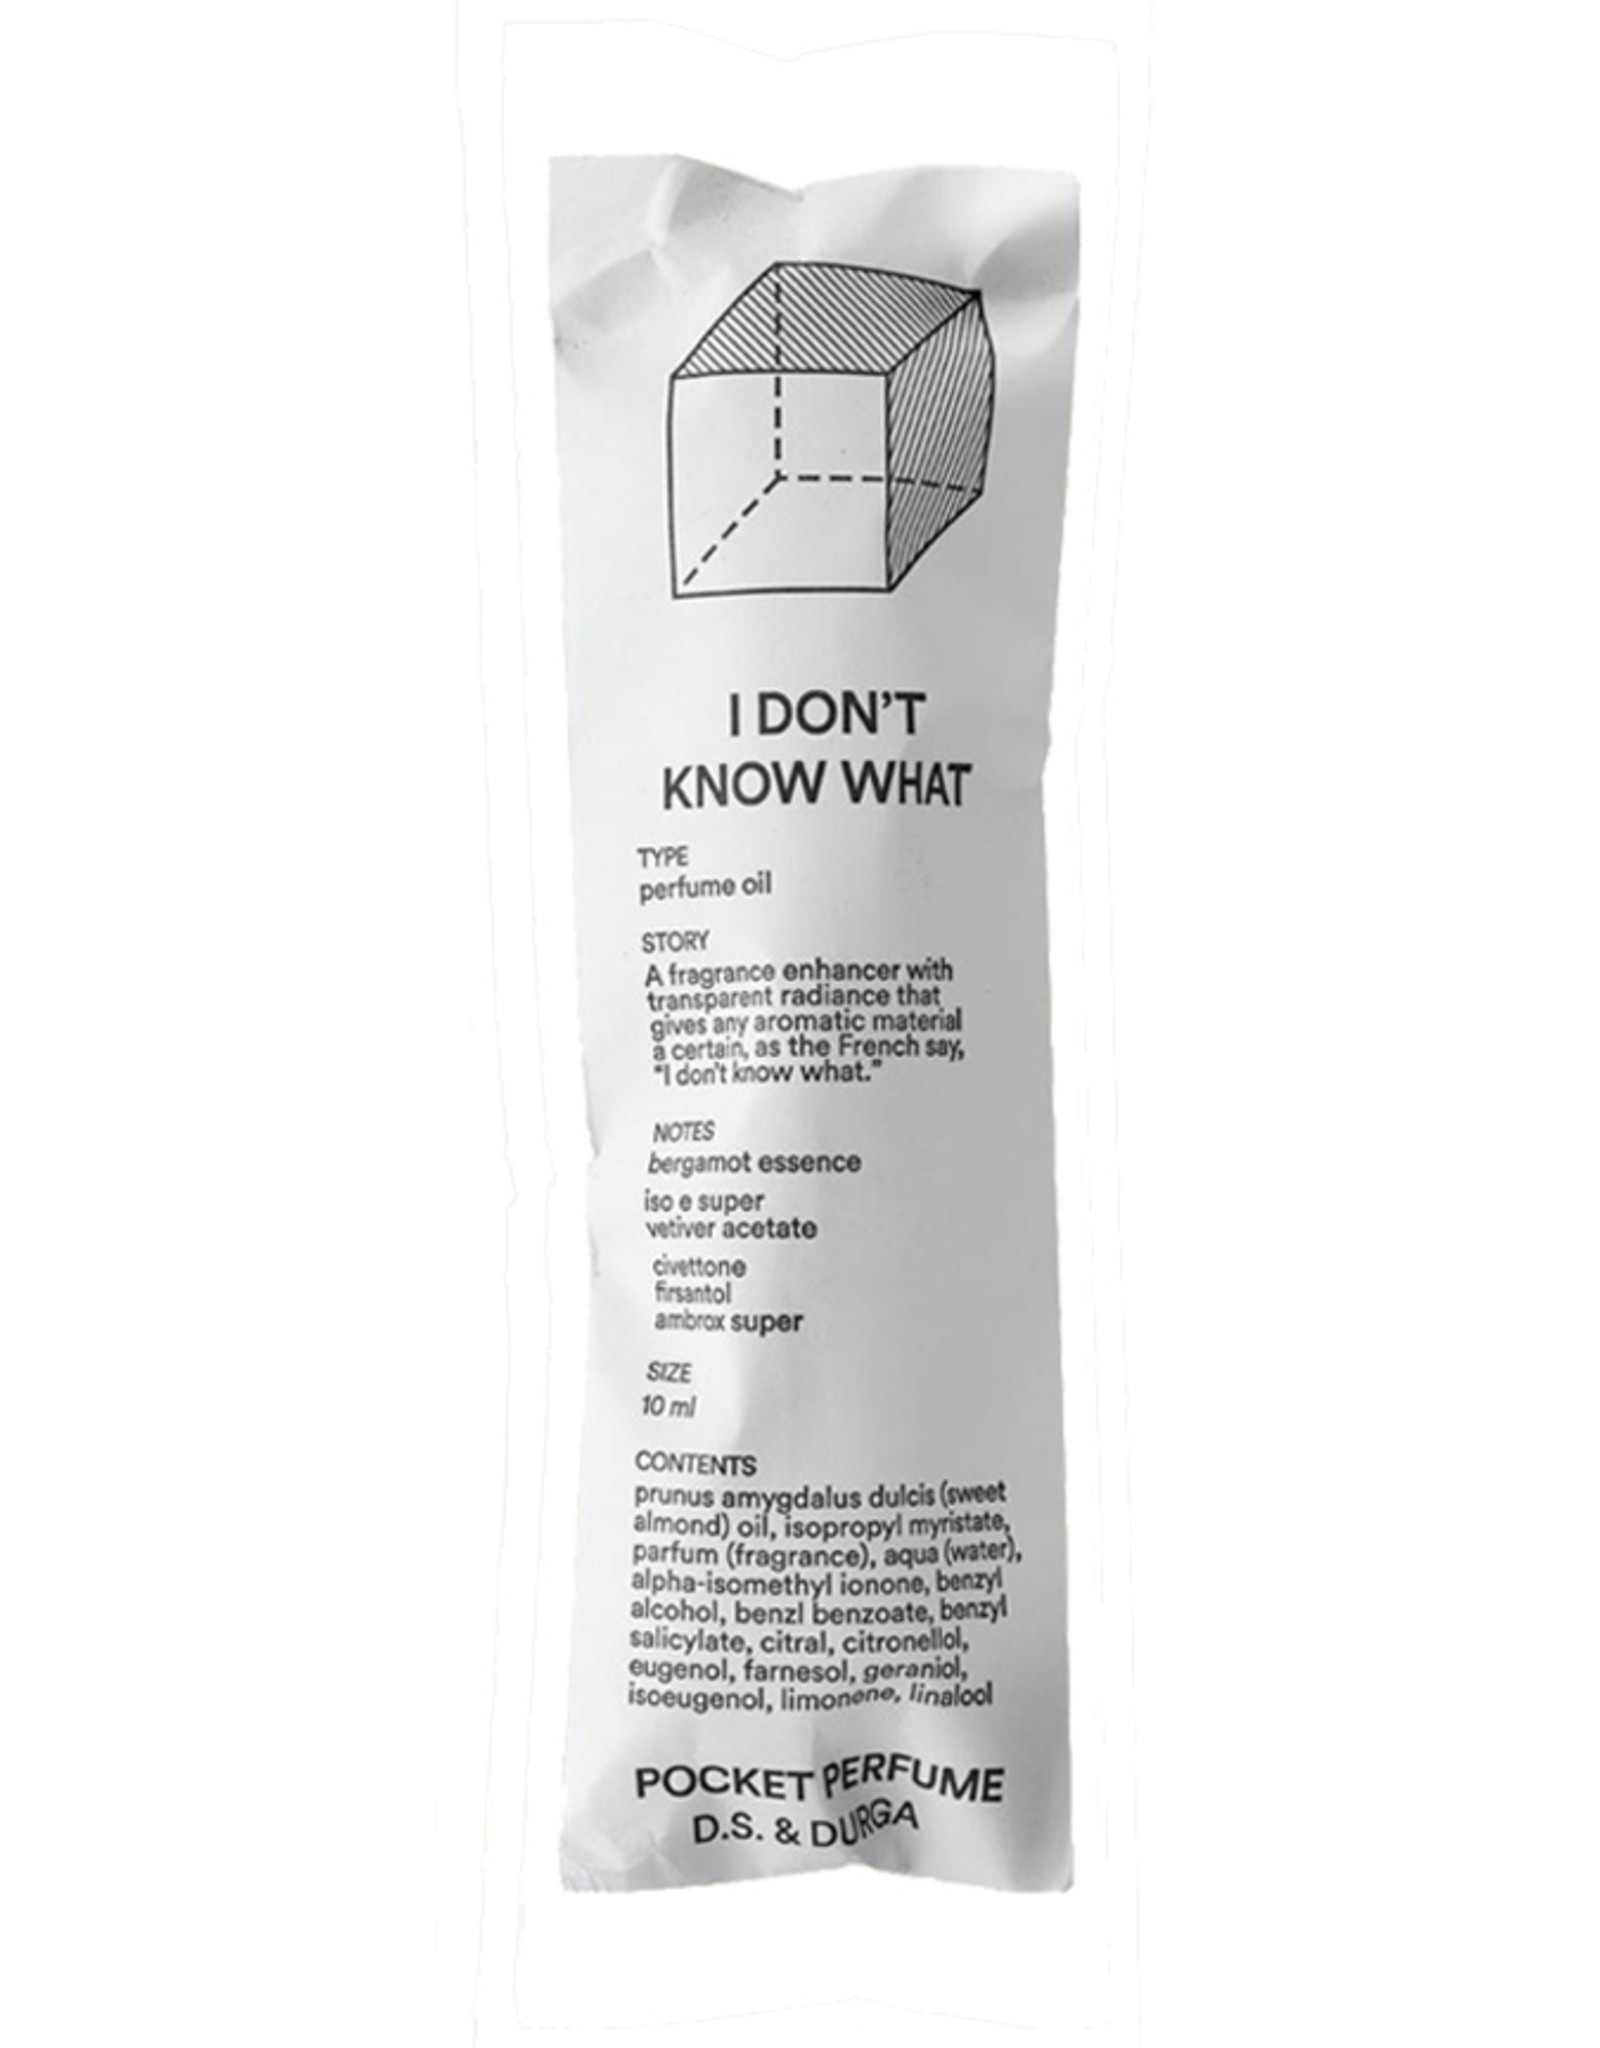 D.S. & DURGA I Don't Know What - Pocket Perfume - 10mL